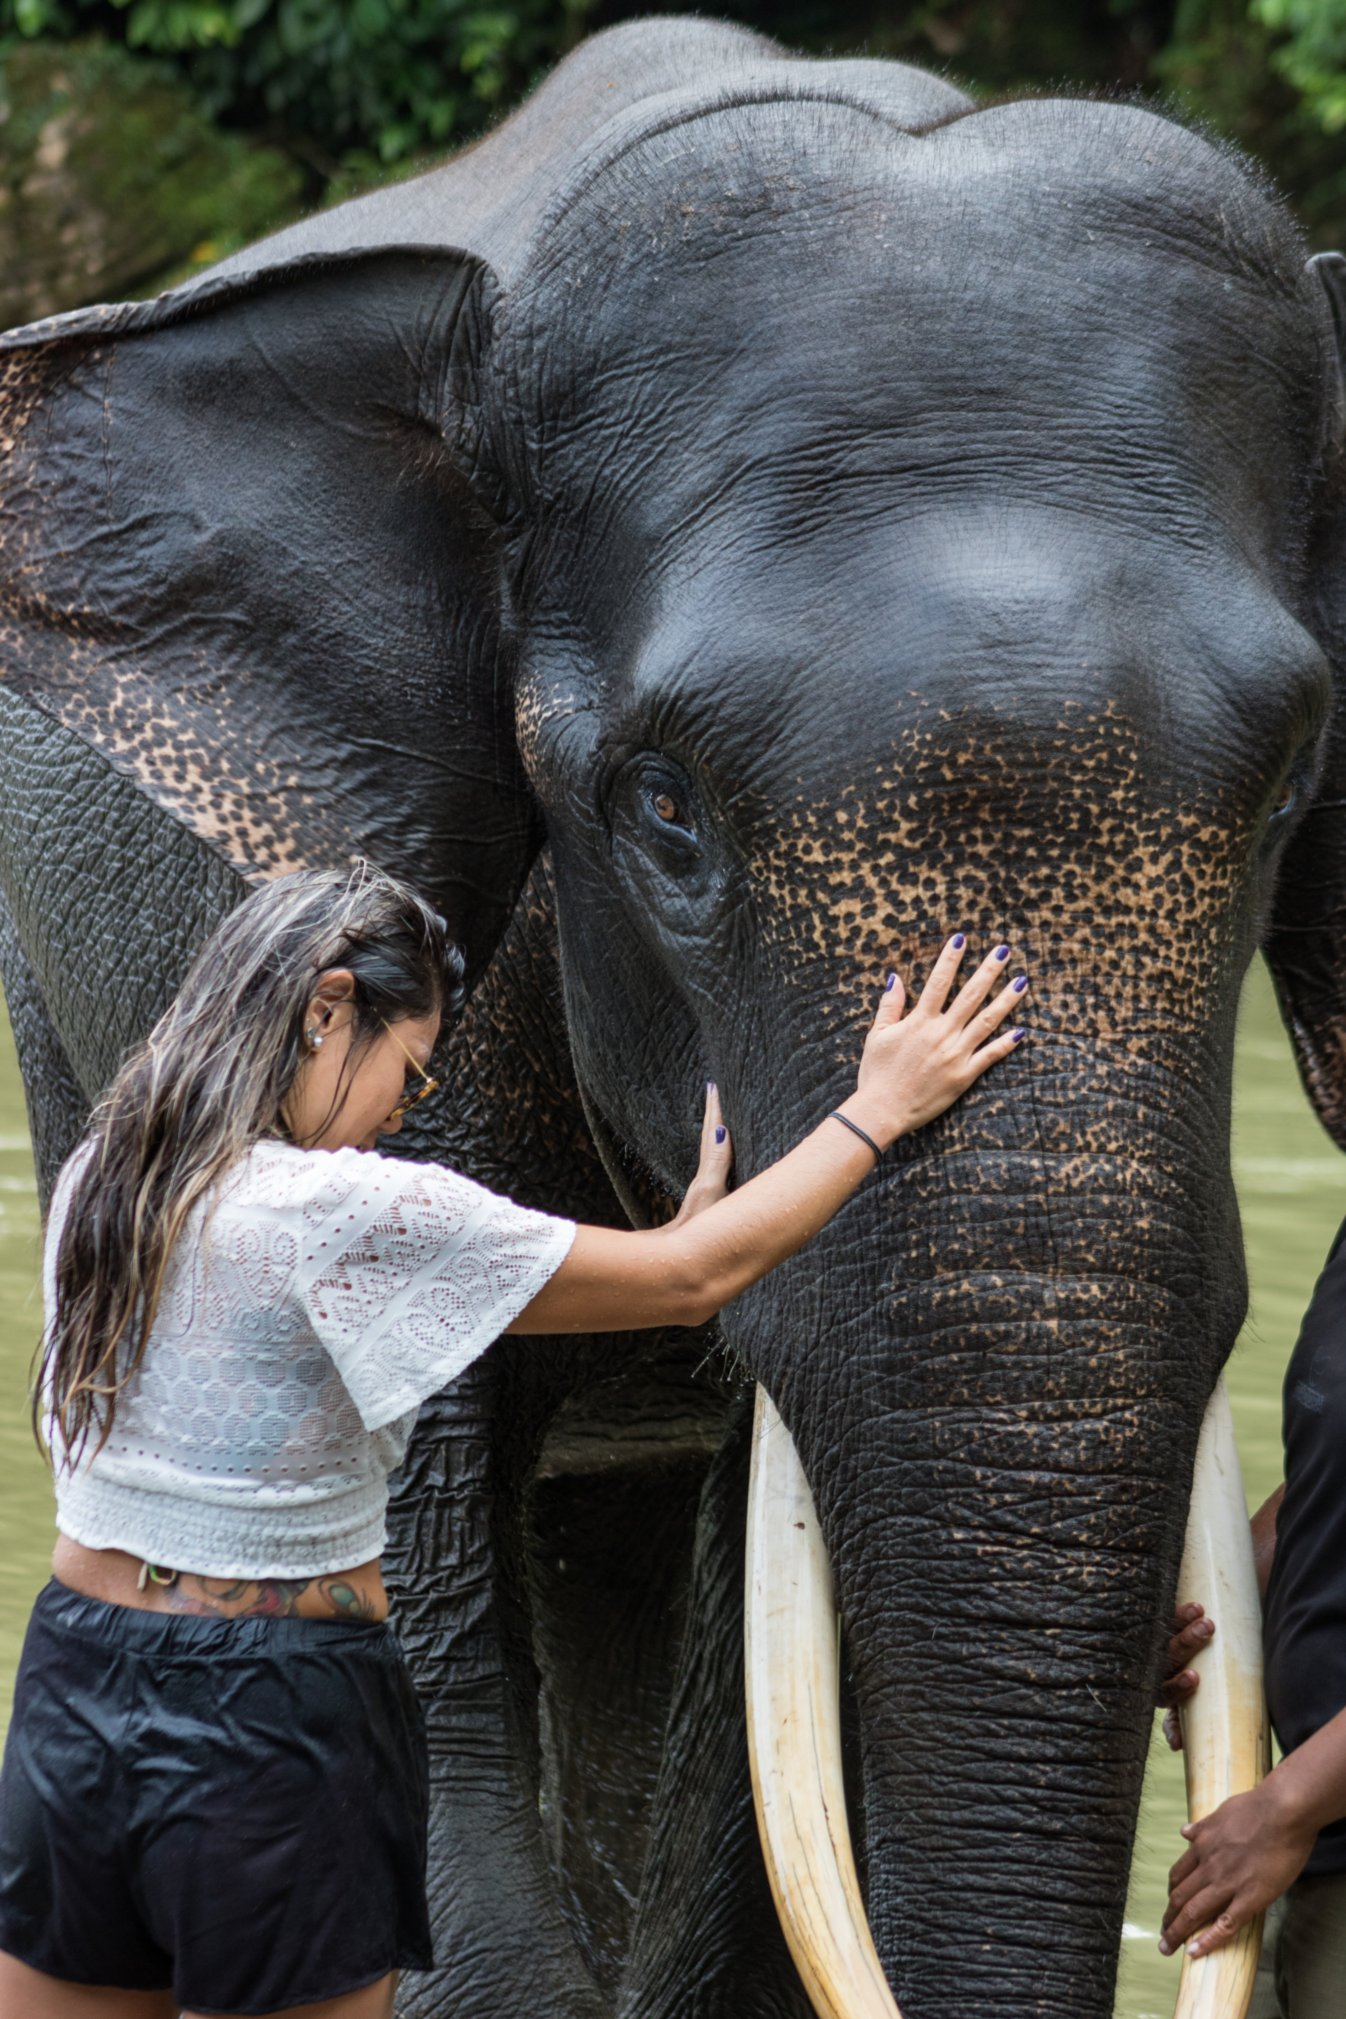 Interacting with elephants at Bukit Lawang National Park